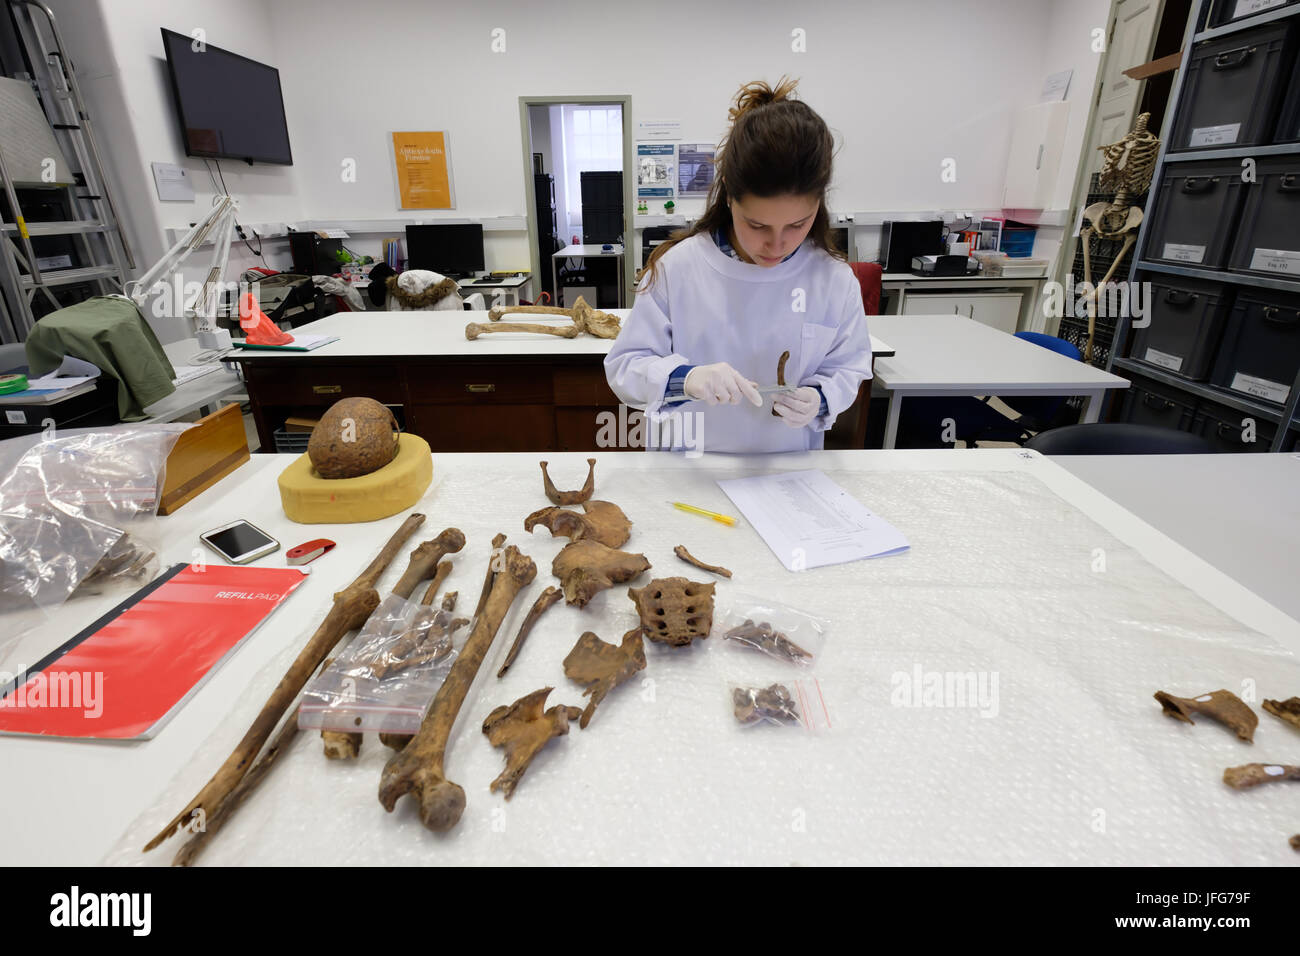 Forensic anthropologist working on an ancient skeleton - Stock Image